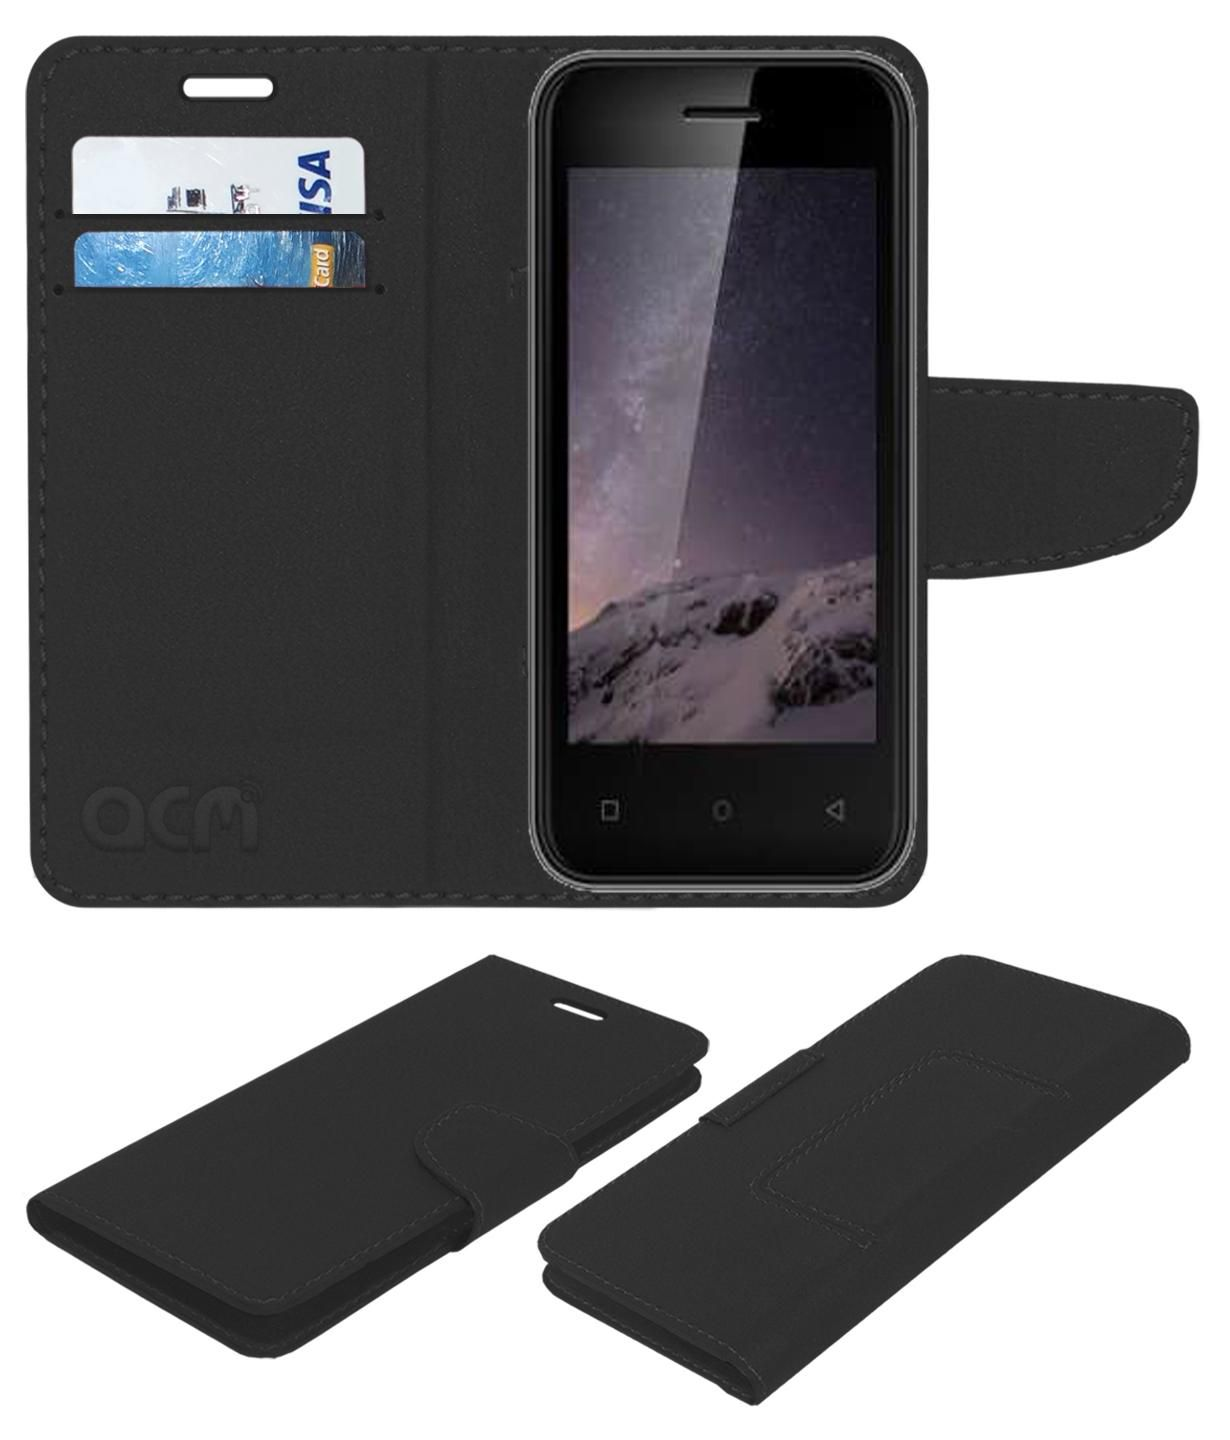 Zen Admire Curve Flip Cover by ACM - Black